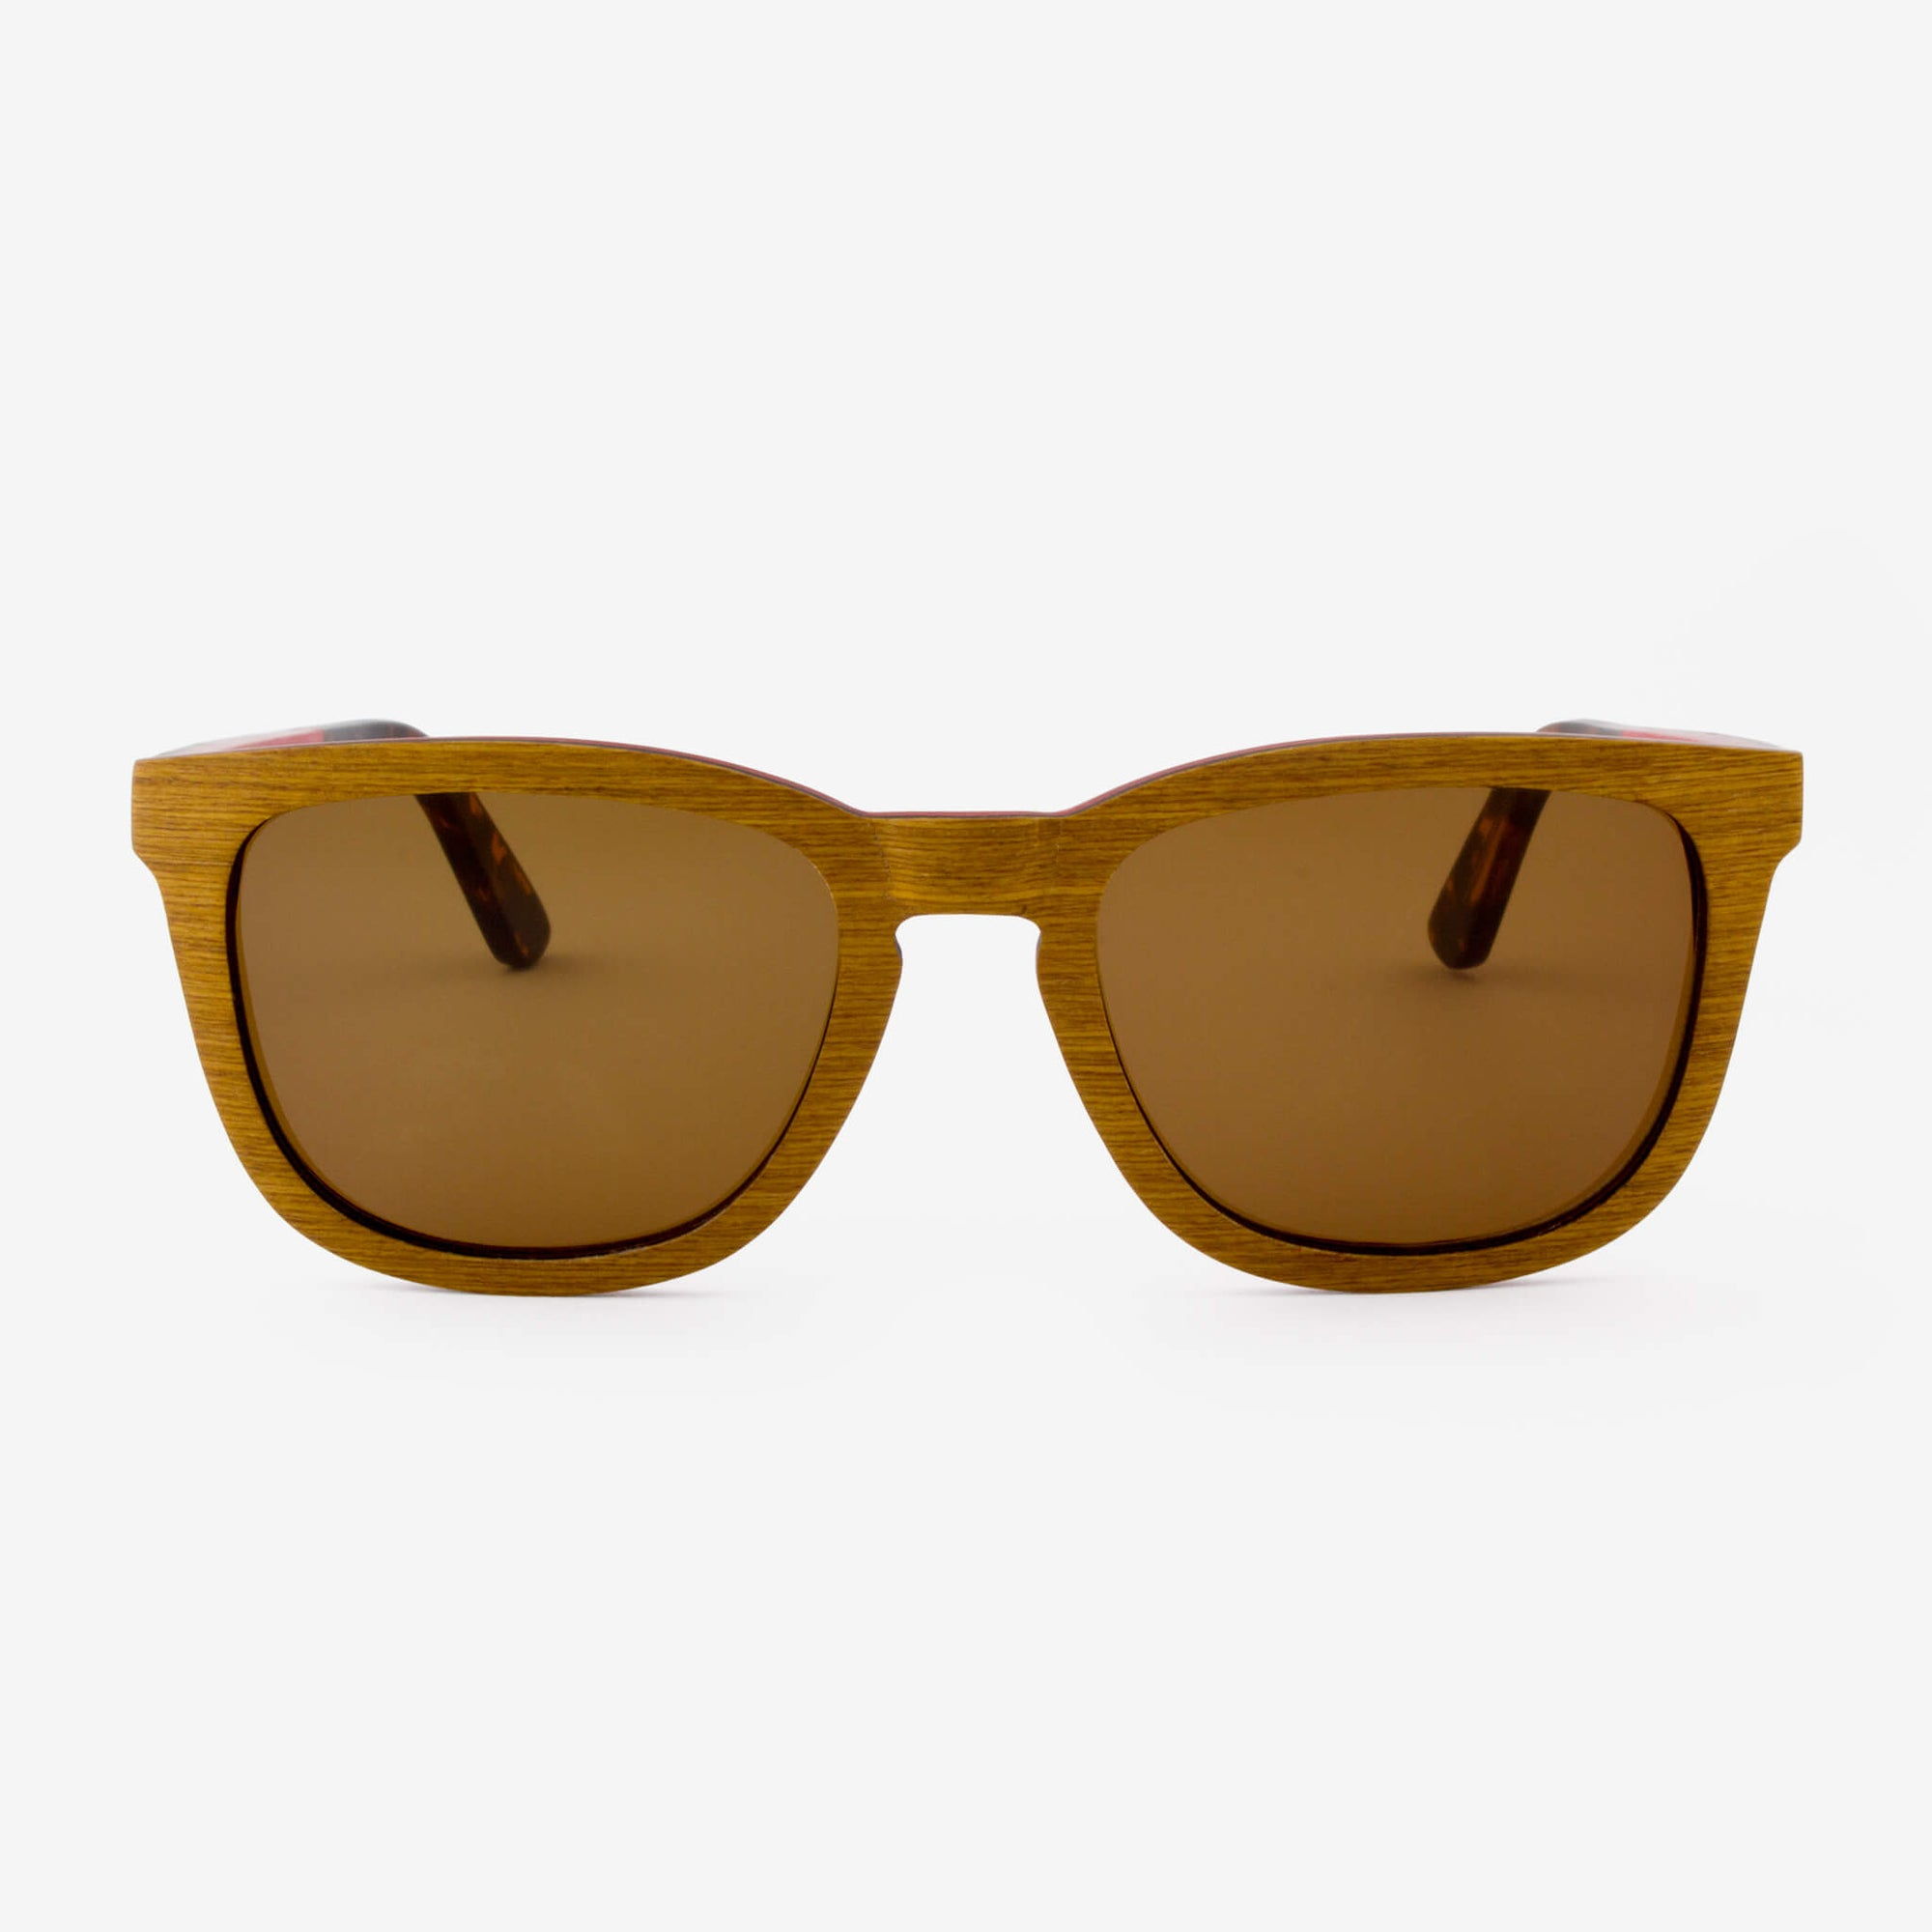 Ormand teak layered wood sunglasses with tortoise shell temples